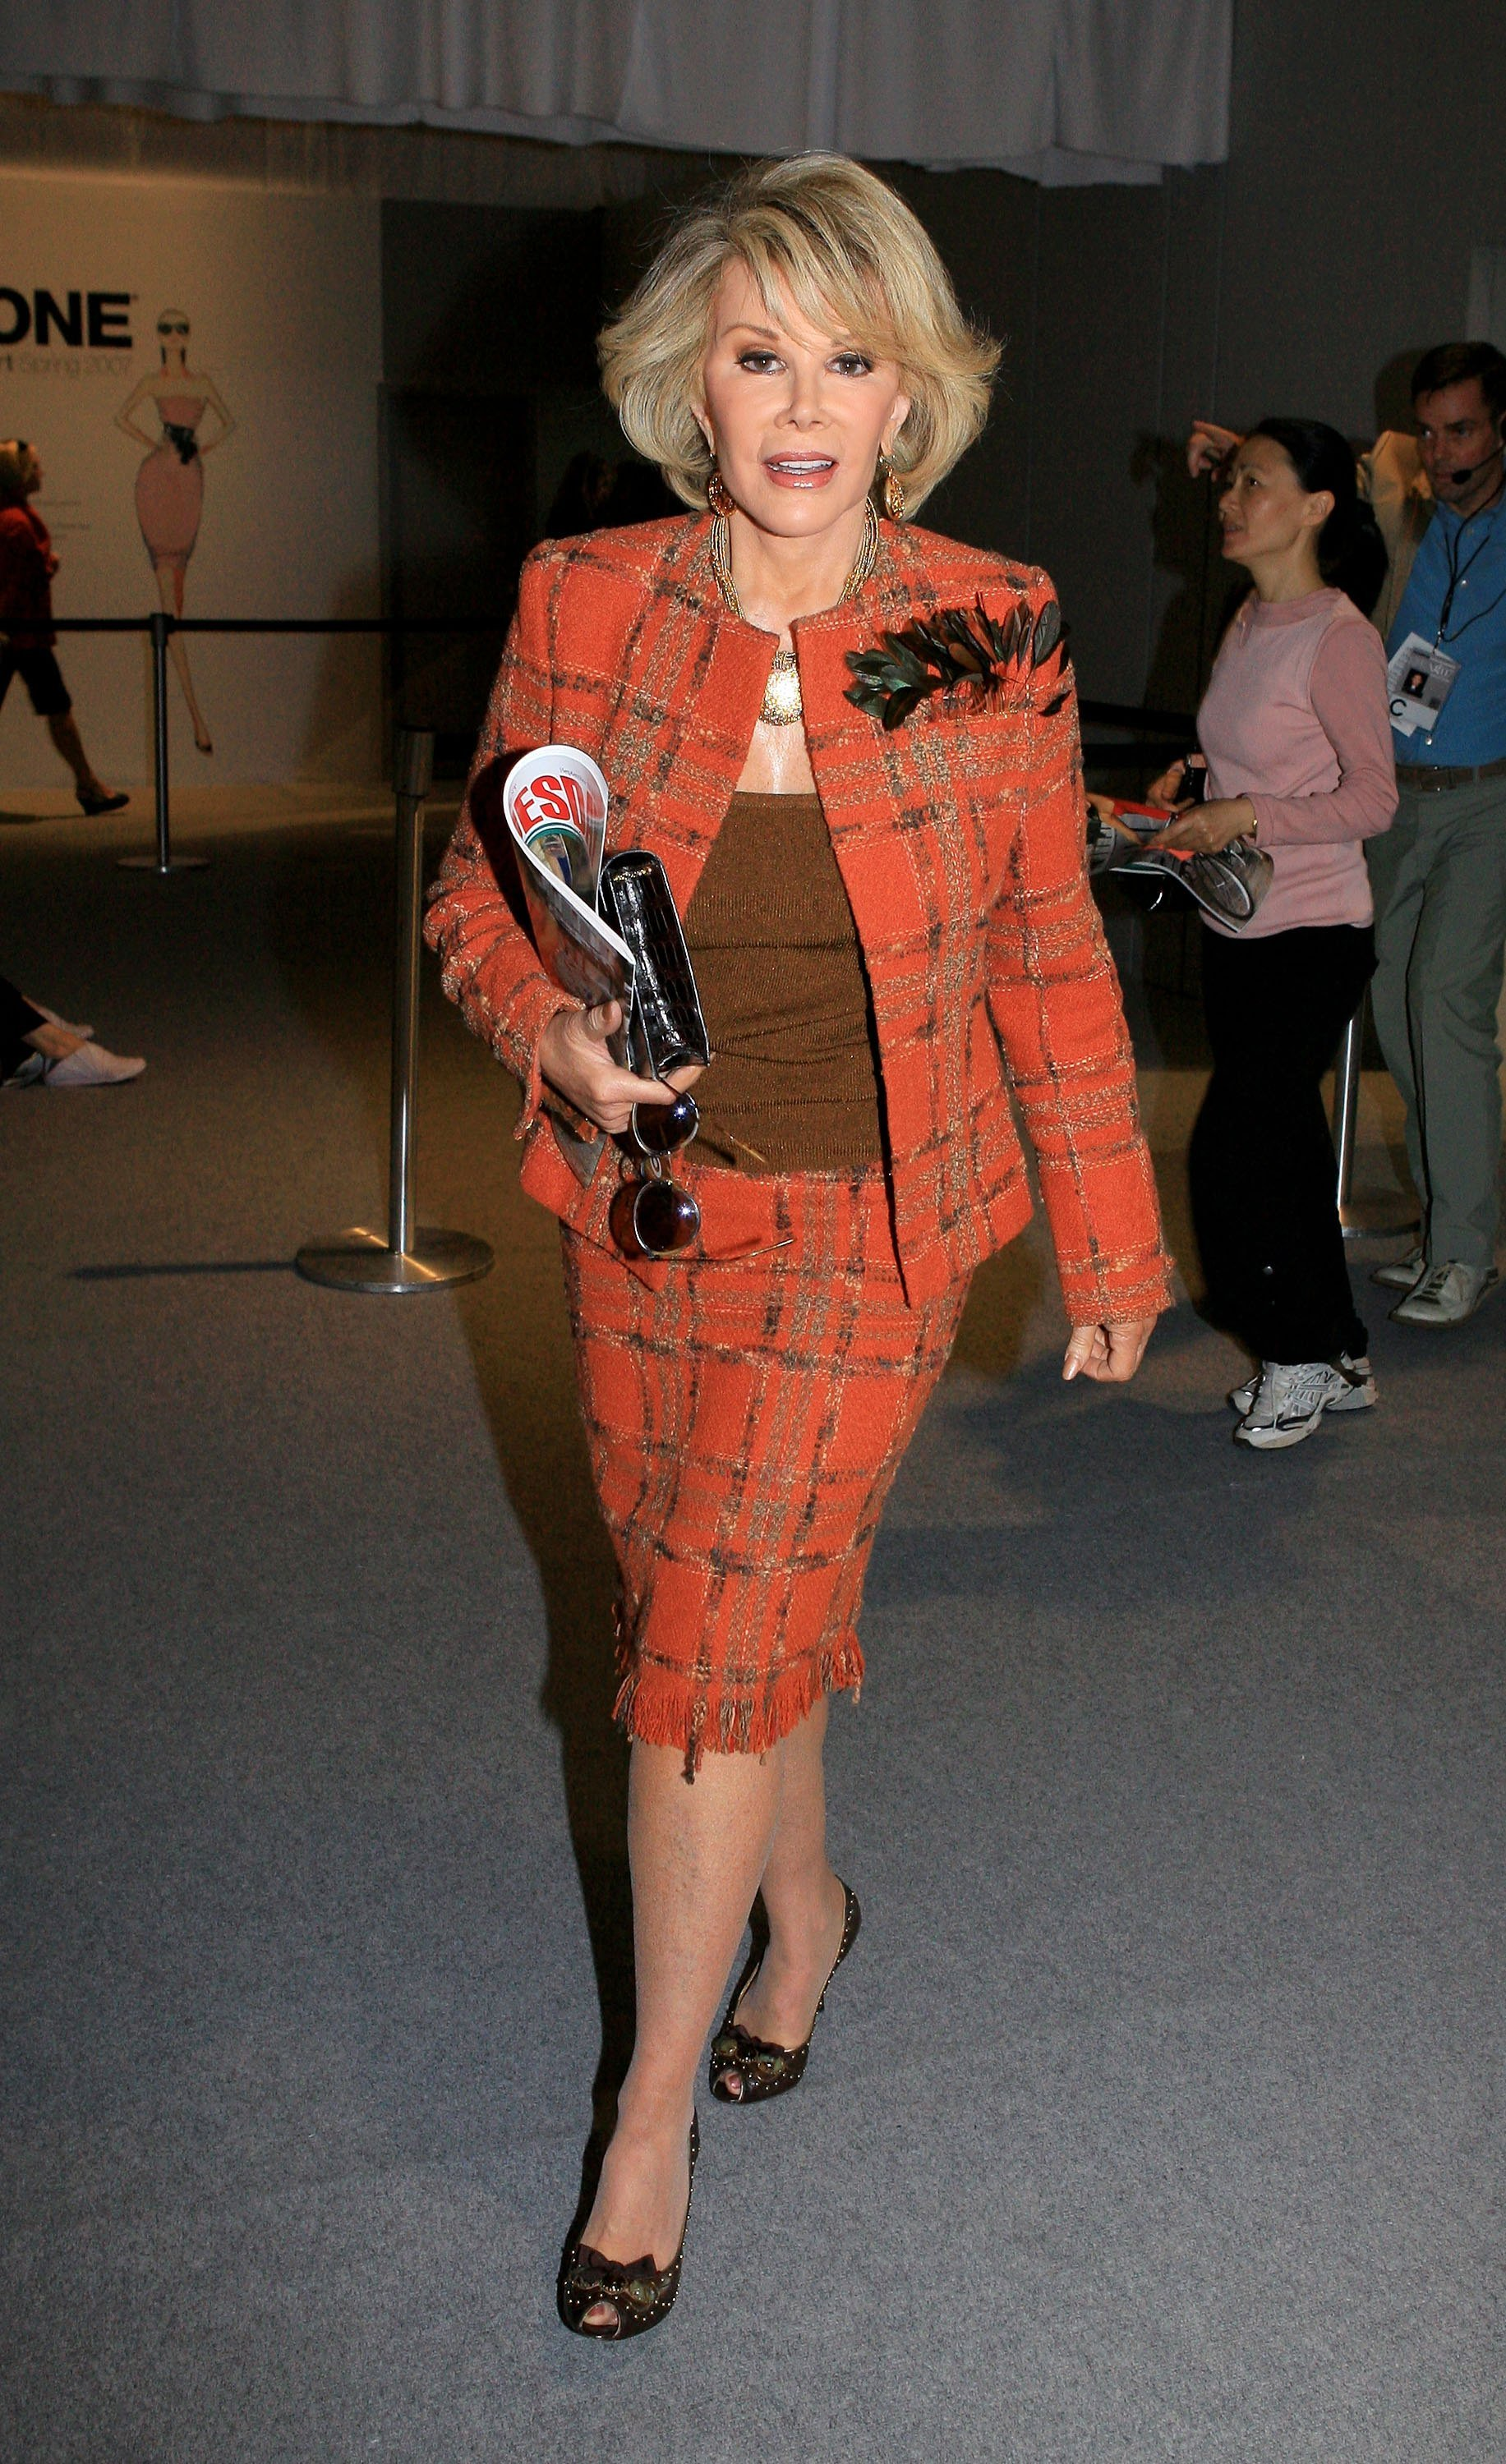 Joan Rivers poses during Olympus Fashion Week in New York City on September 12, 2006 | Photo: Getty Images